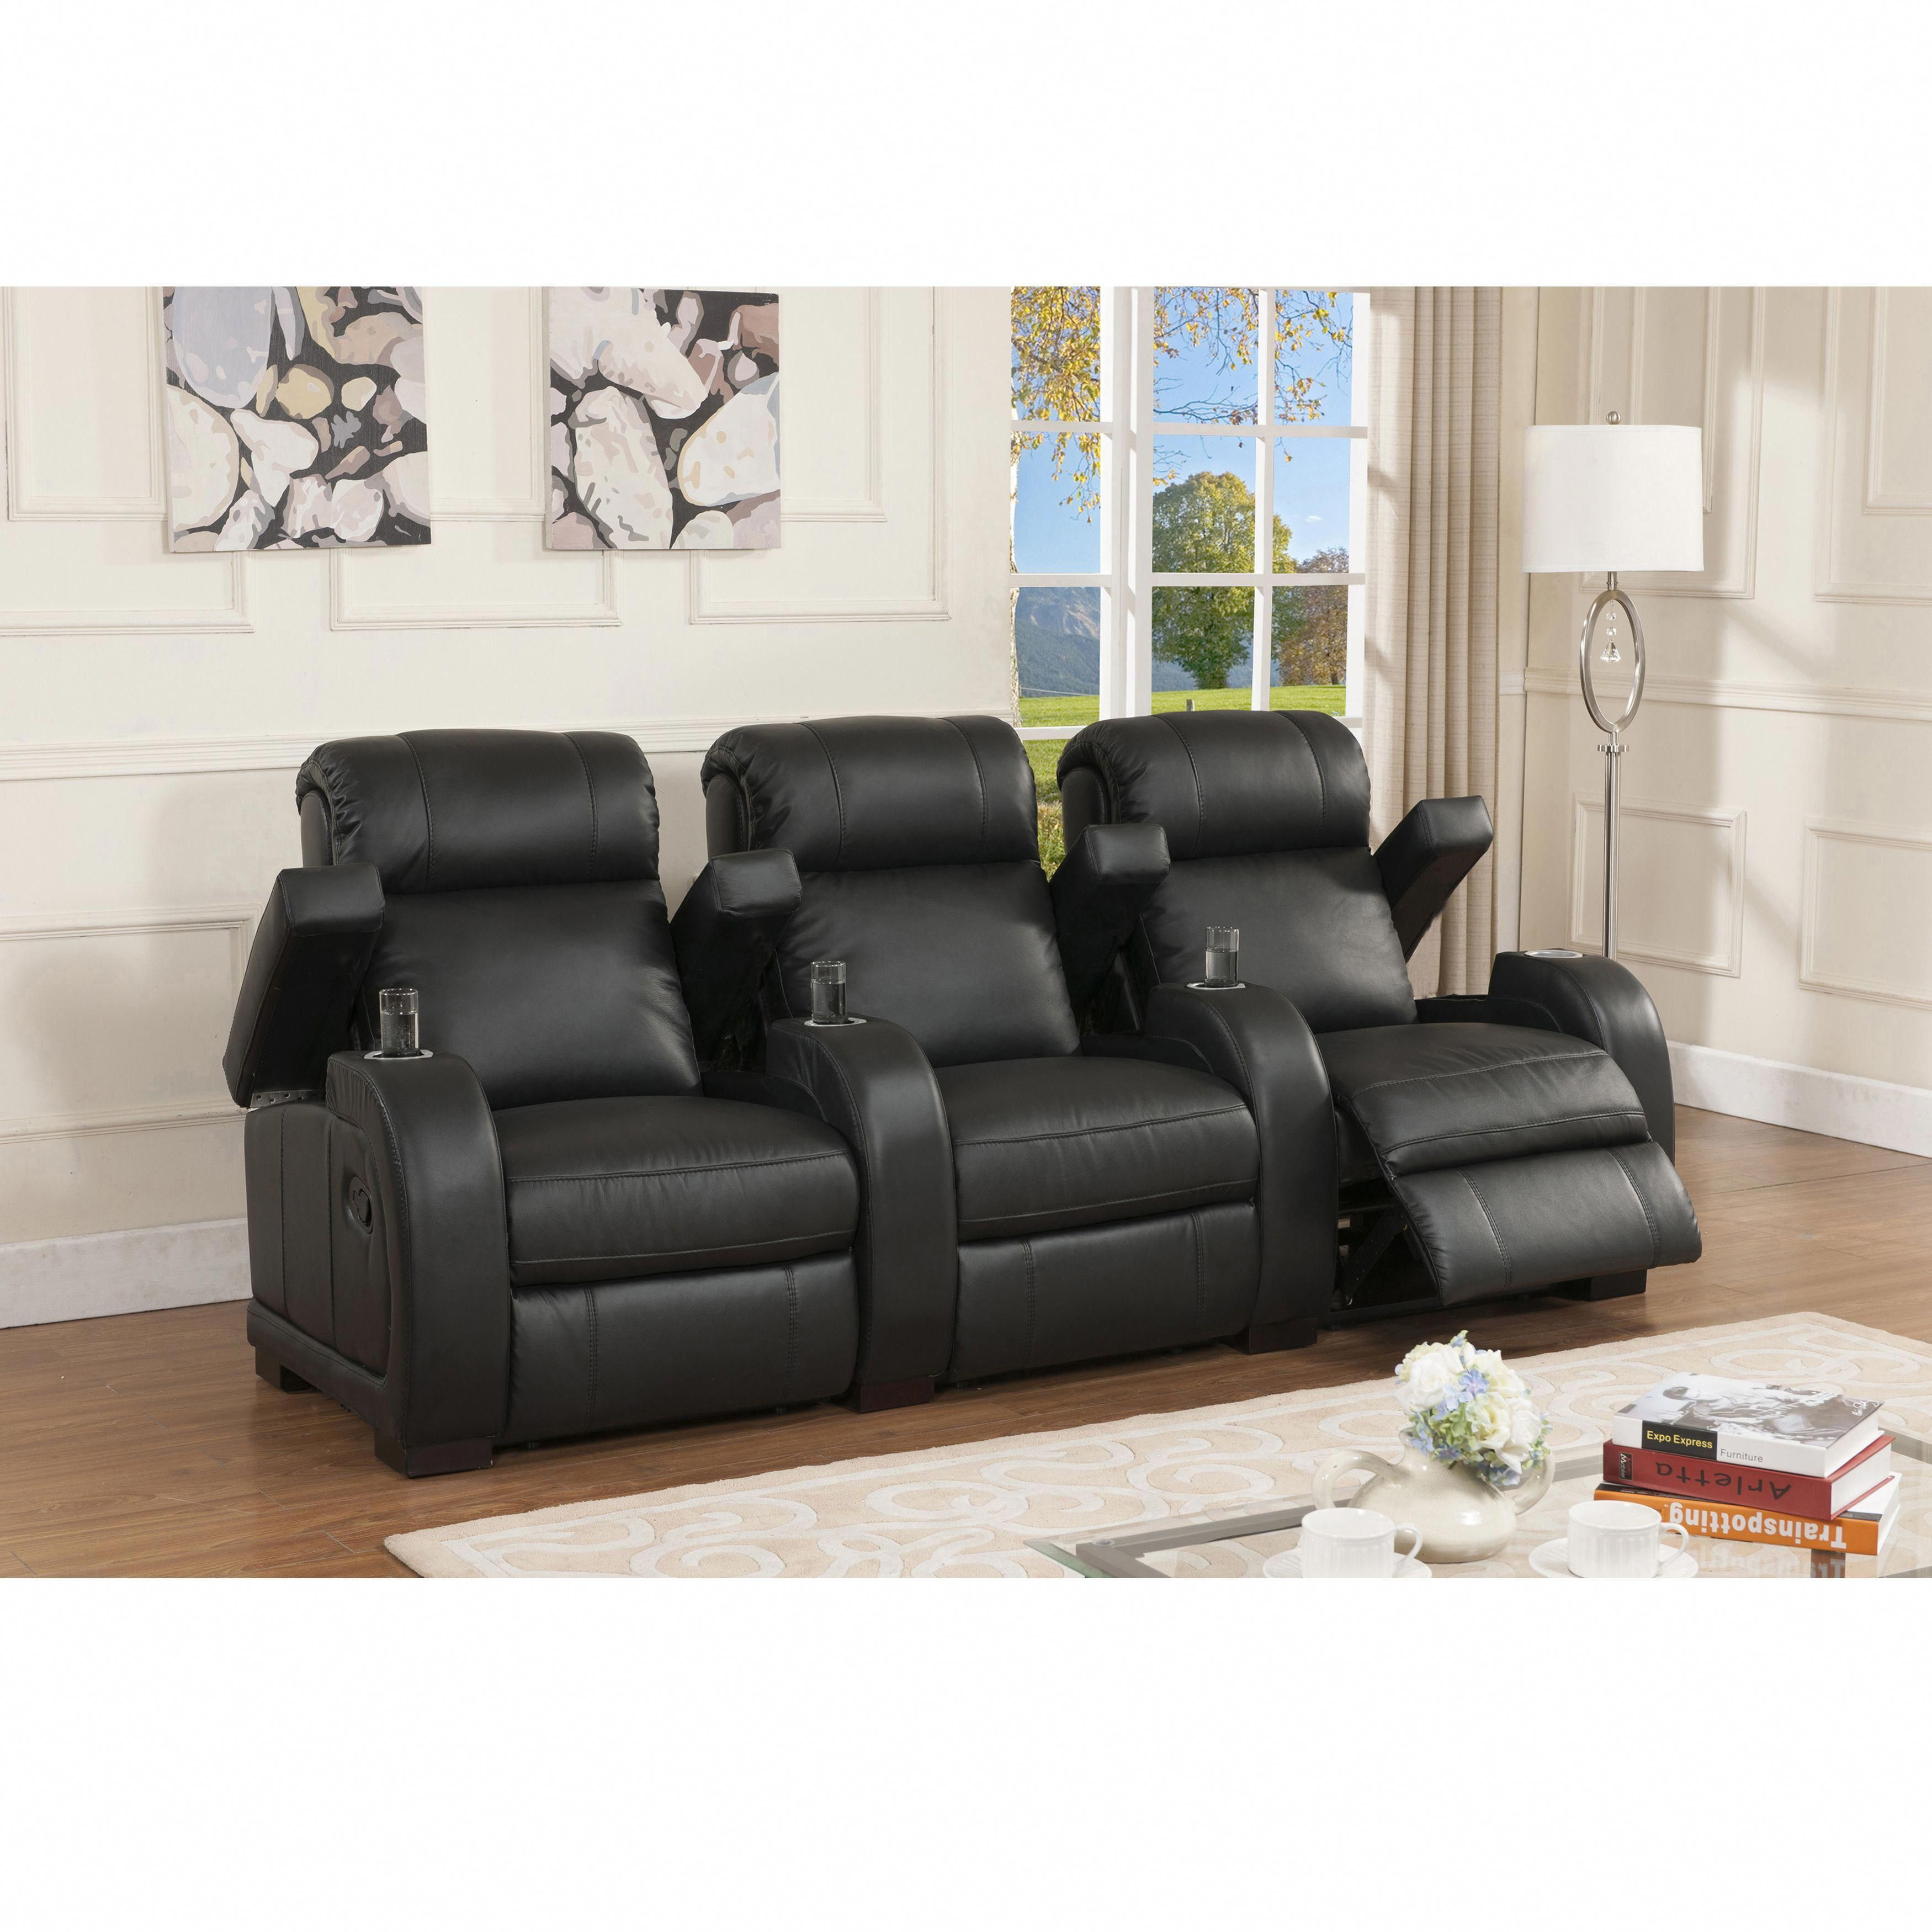 Home Theater Seating, Theatre Room Seating